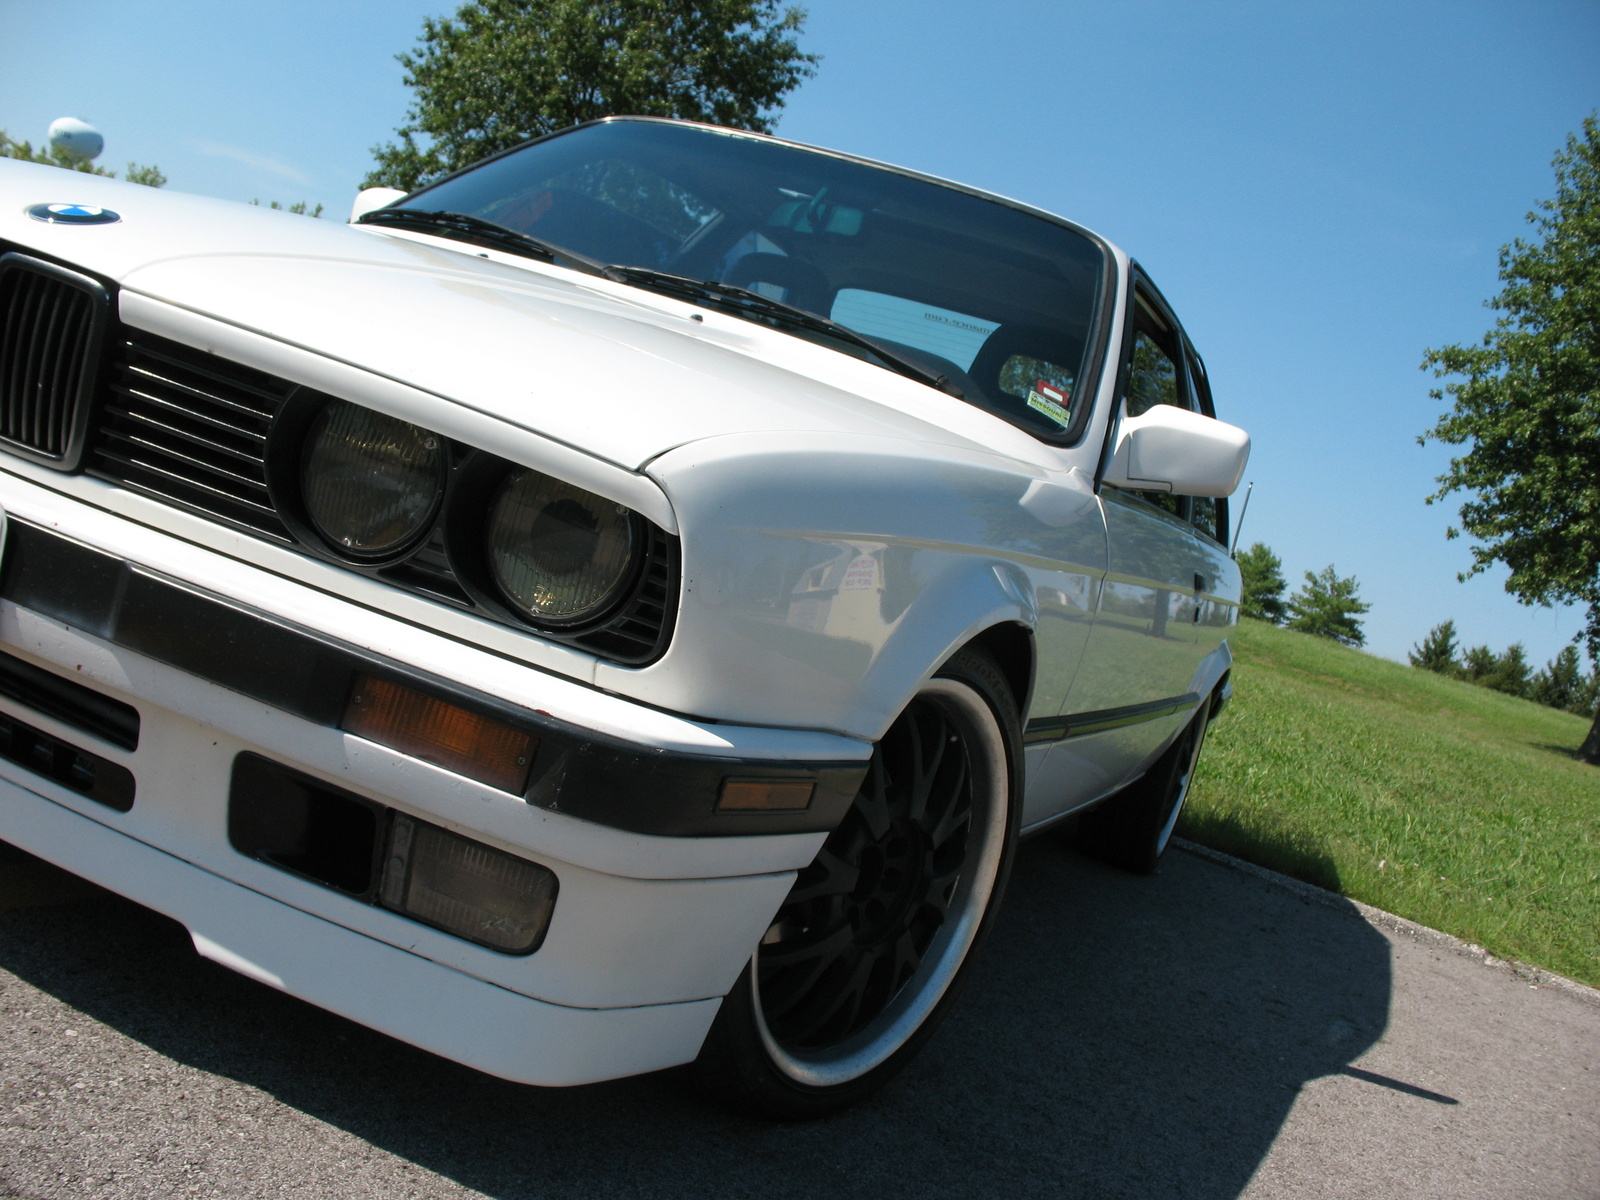 BMW 3 series 324d 1988 photo - 12